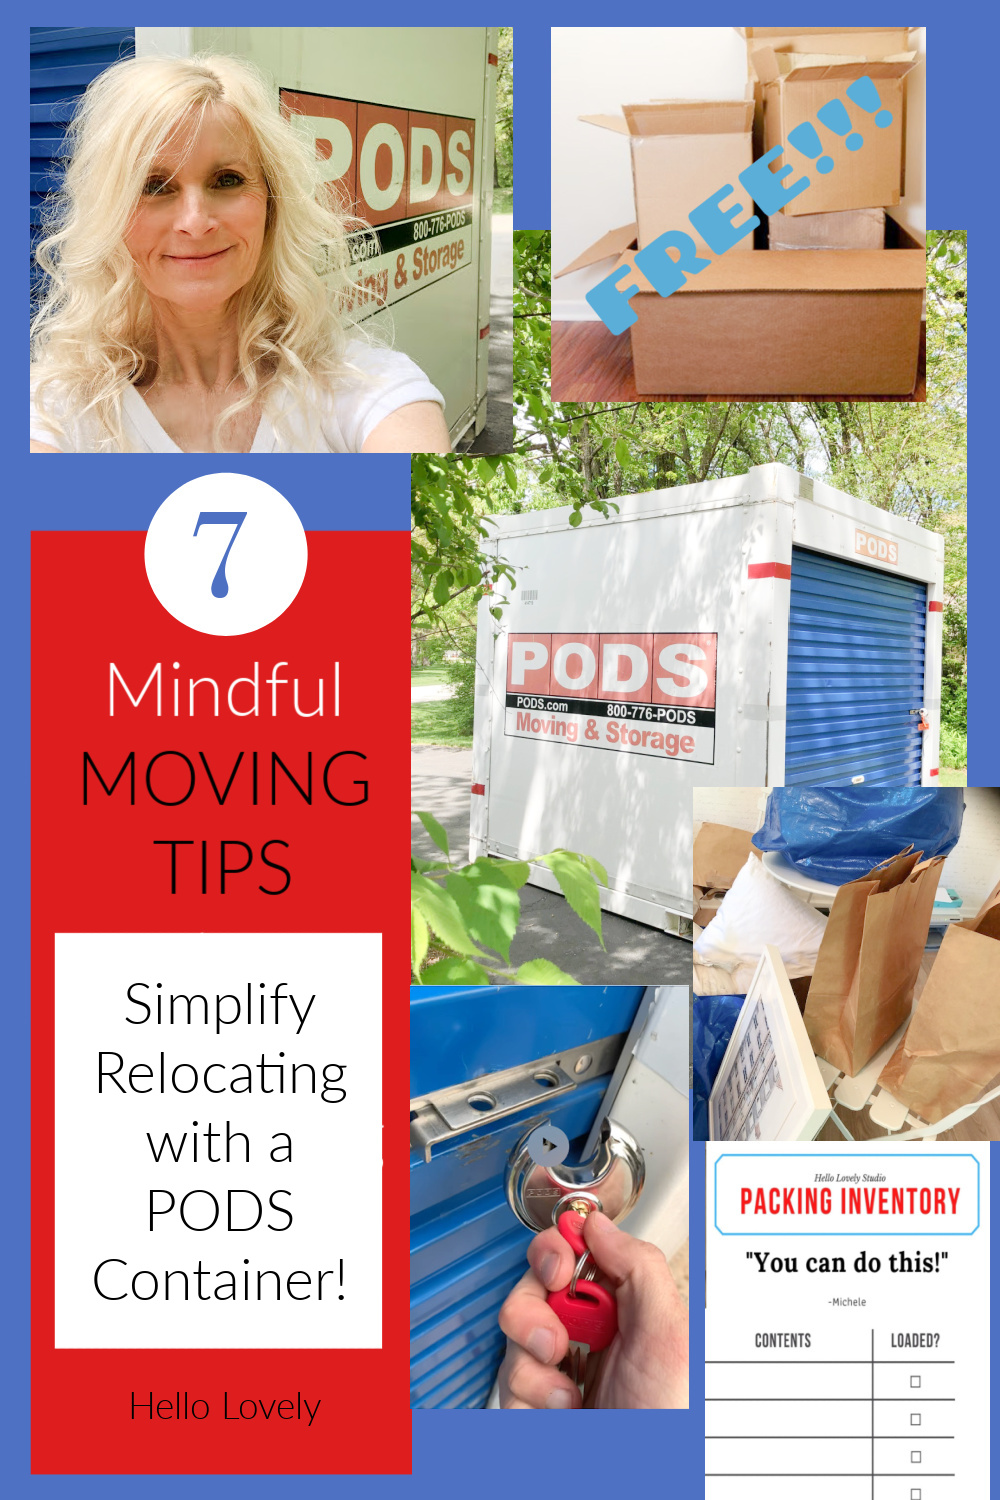 7 Mindful Moving Tips to Simplify Relocating with a Container - snag ideas for less stressful relocation with PODS on Hello Lovely! #whatmovesyou #movingtips #podscontainer #relocation